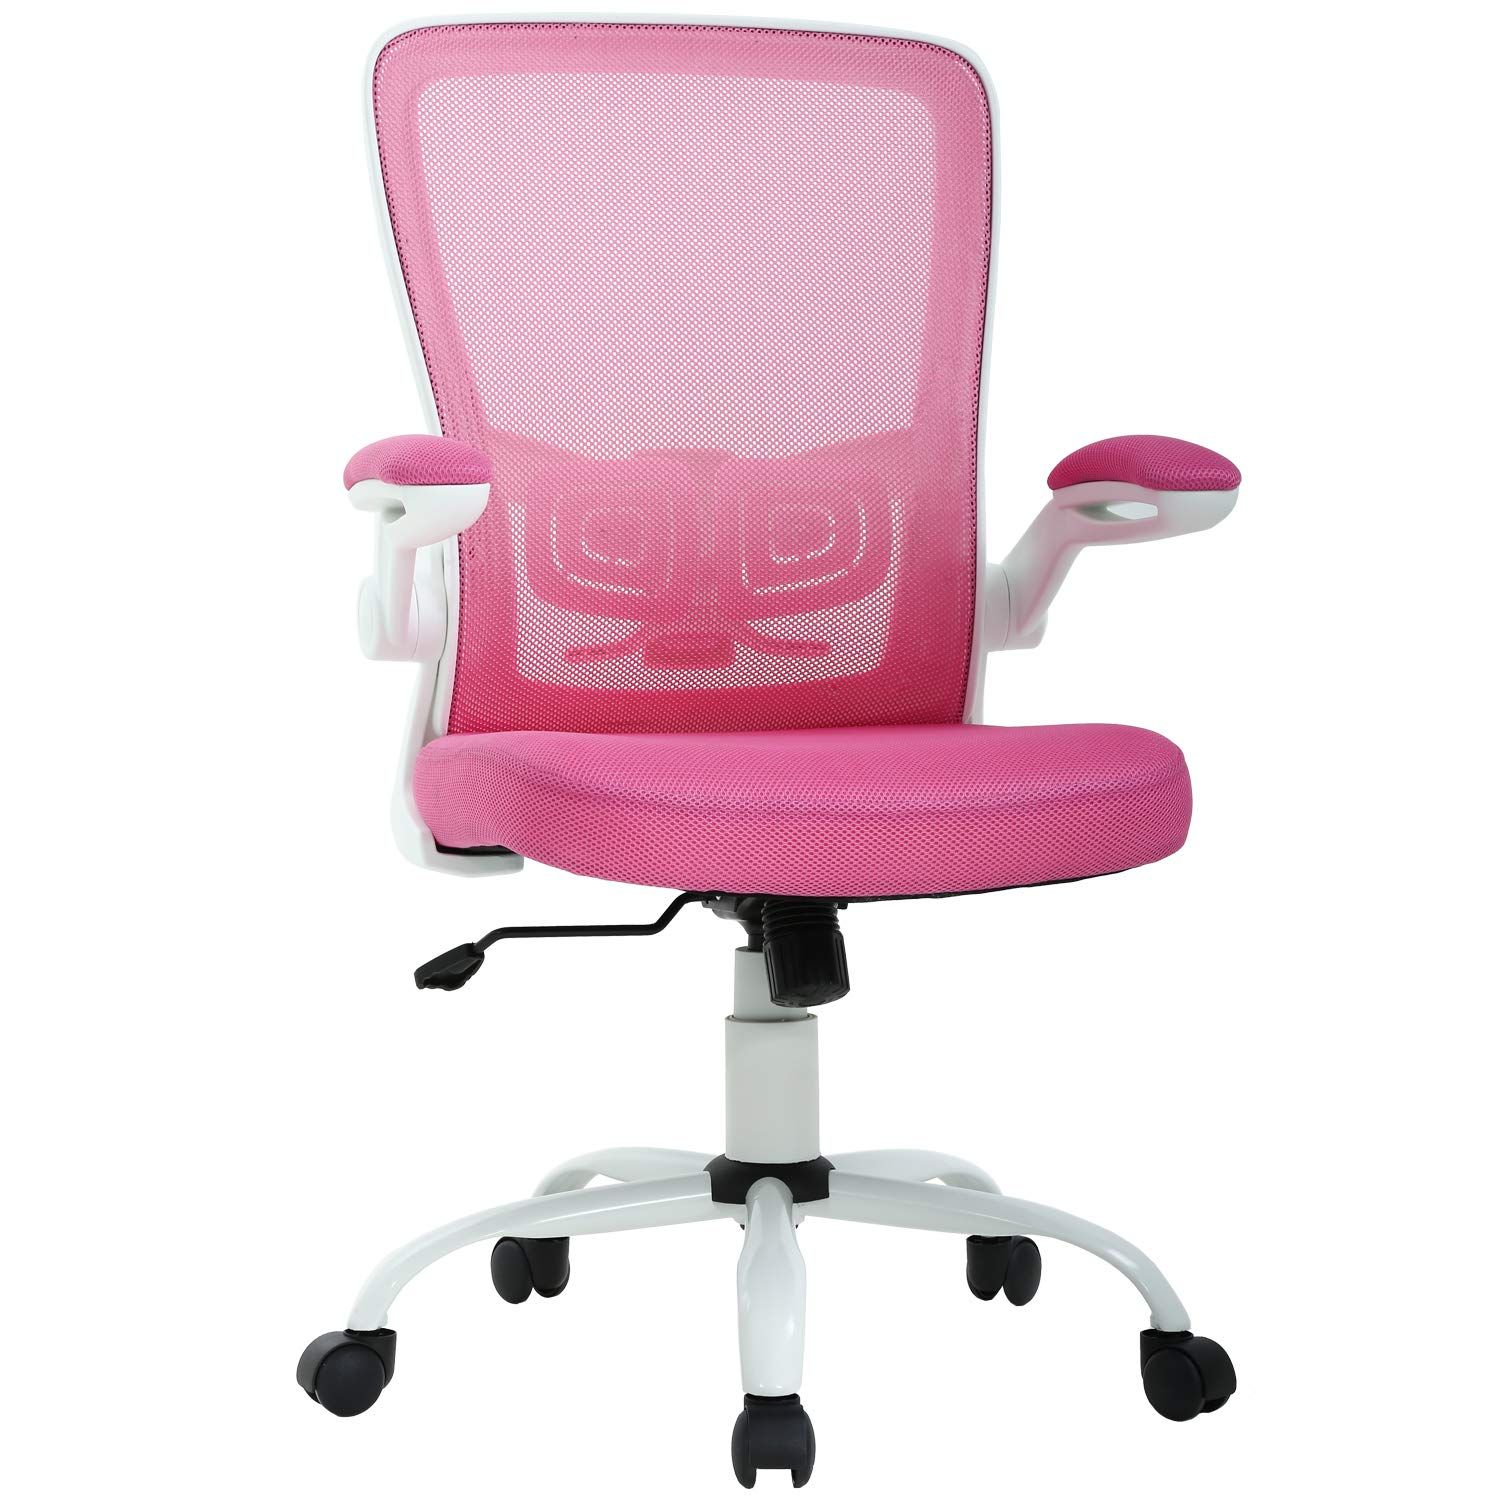 Office Chair Desk Chair Computer Chair Back Support Modern Executive Mesh Chair With Adjustable Armrest Rolling Swivel Cha Pink Desk Chair Chair Computer Chair